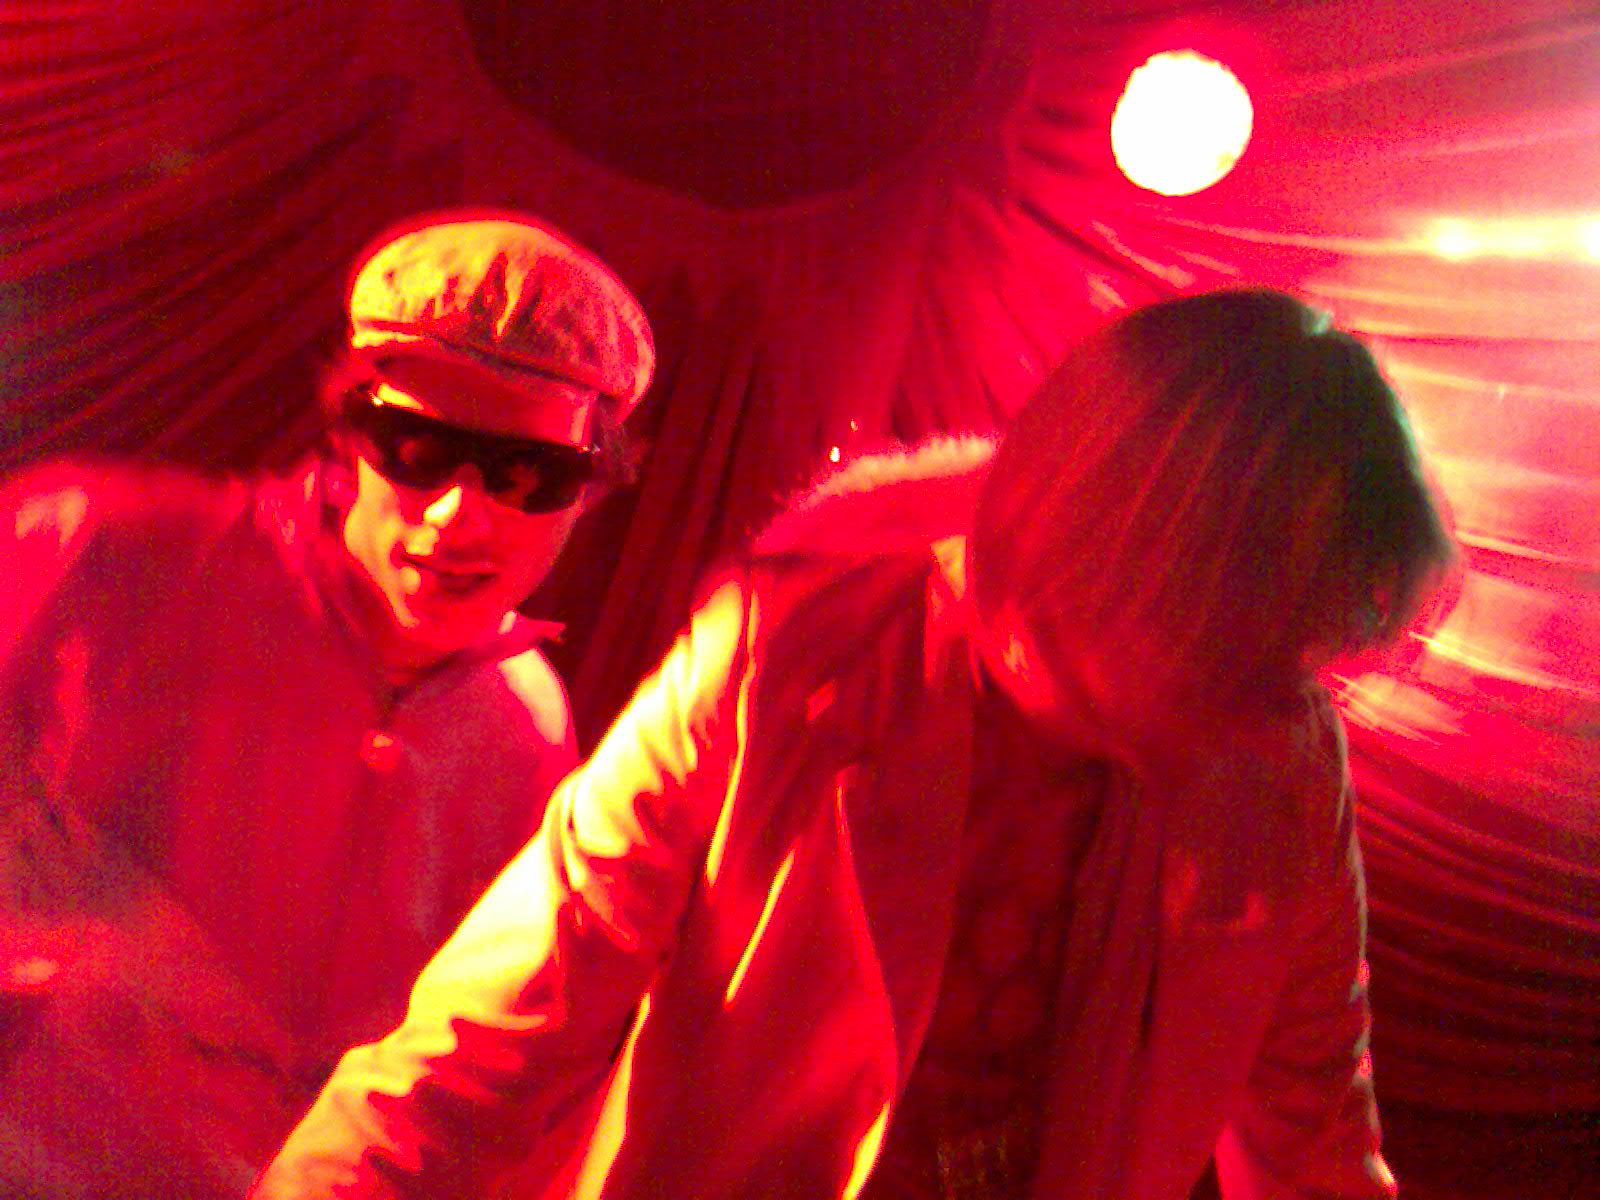 DJ's in Red